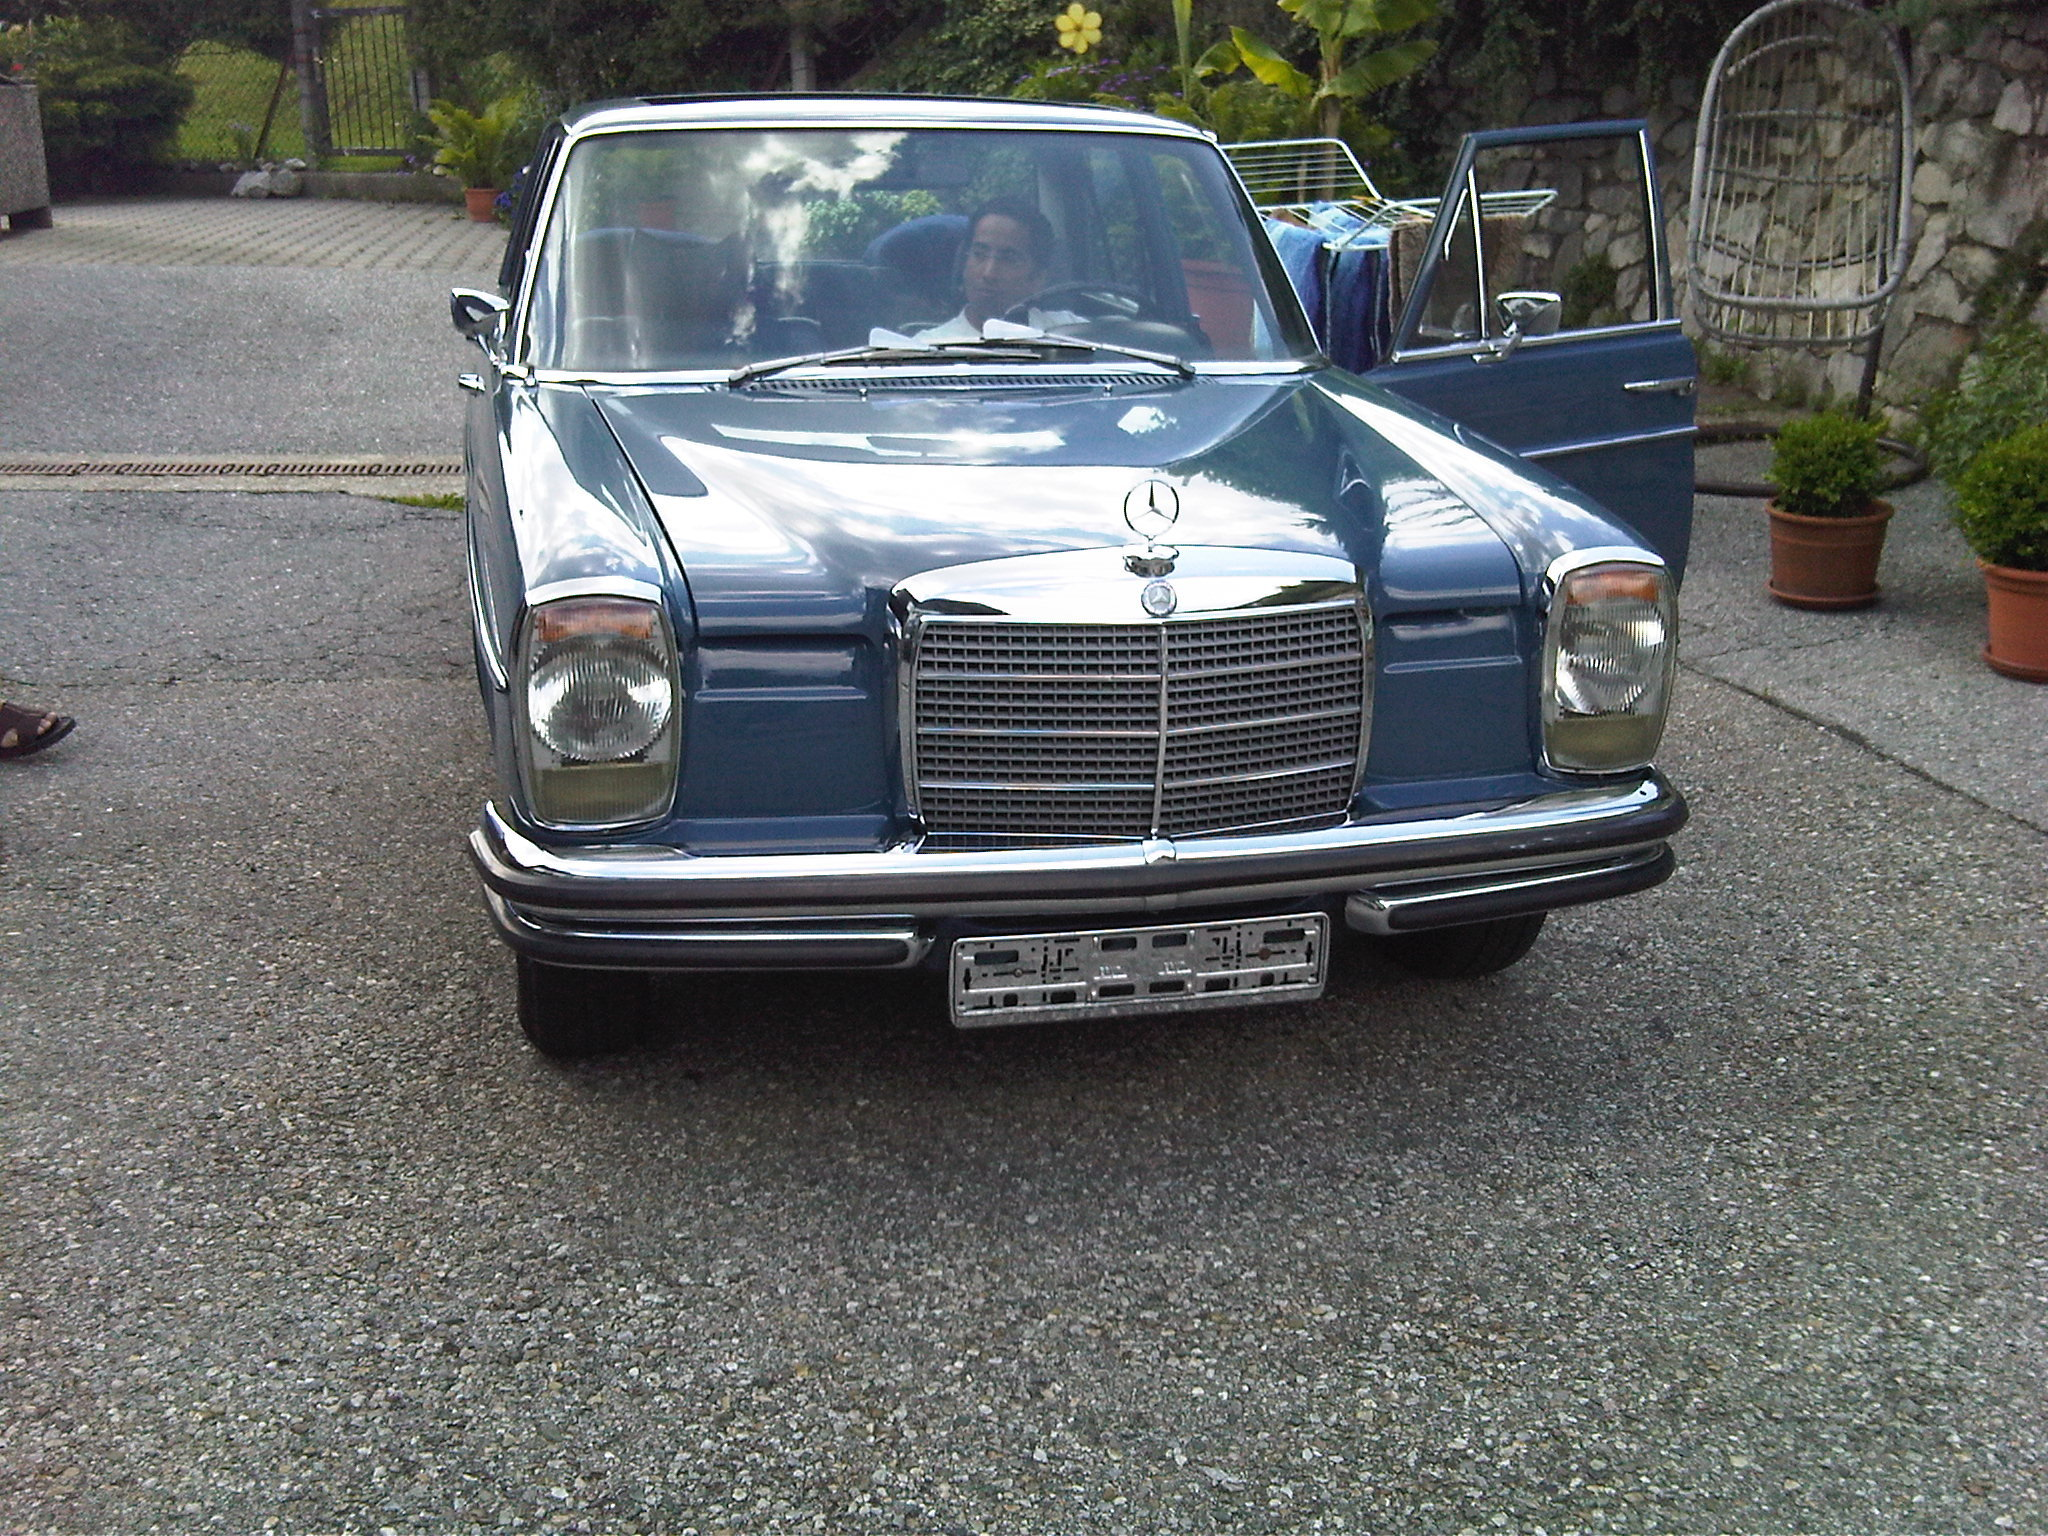 626757 1972 mercedes benz 230 specs photos modification for 1972 mercedes benz